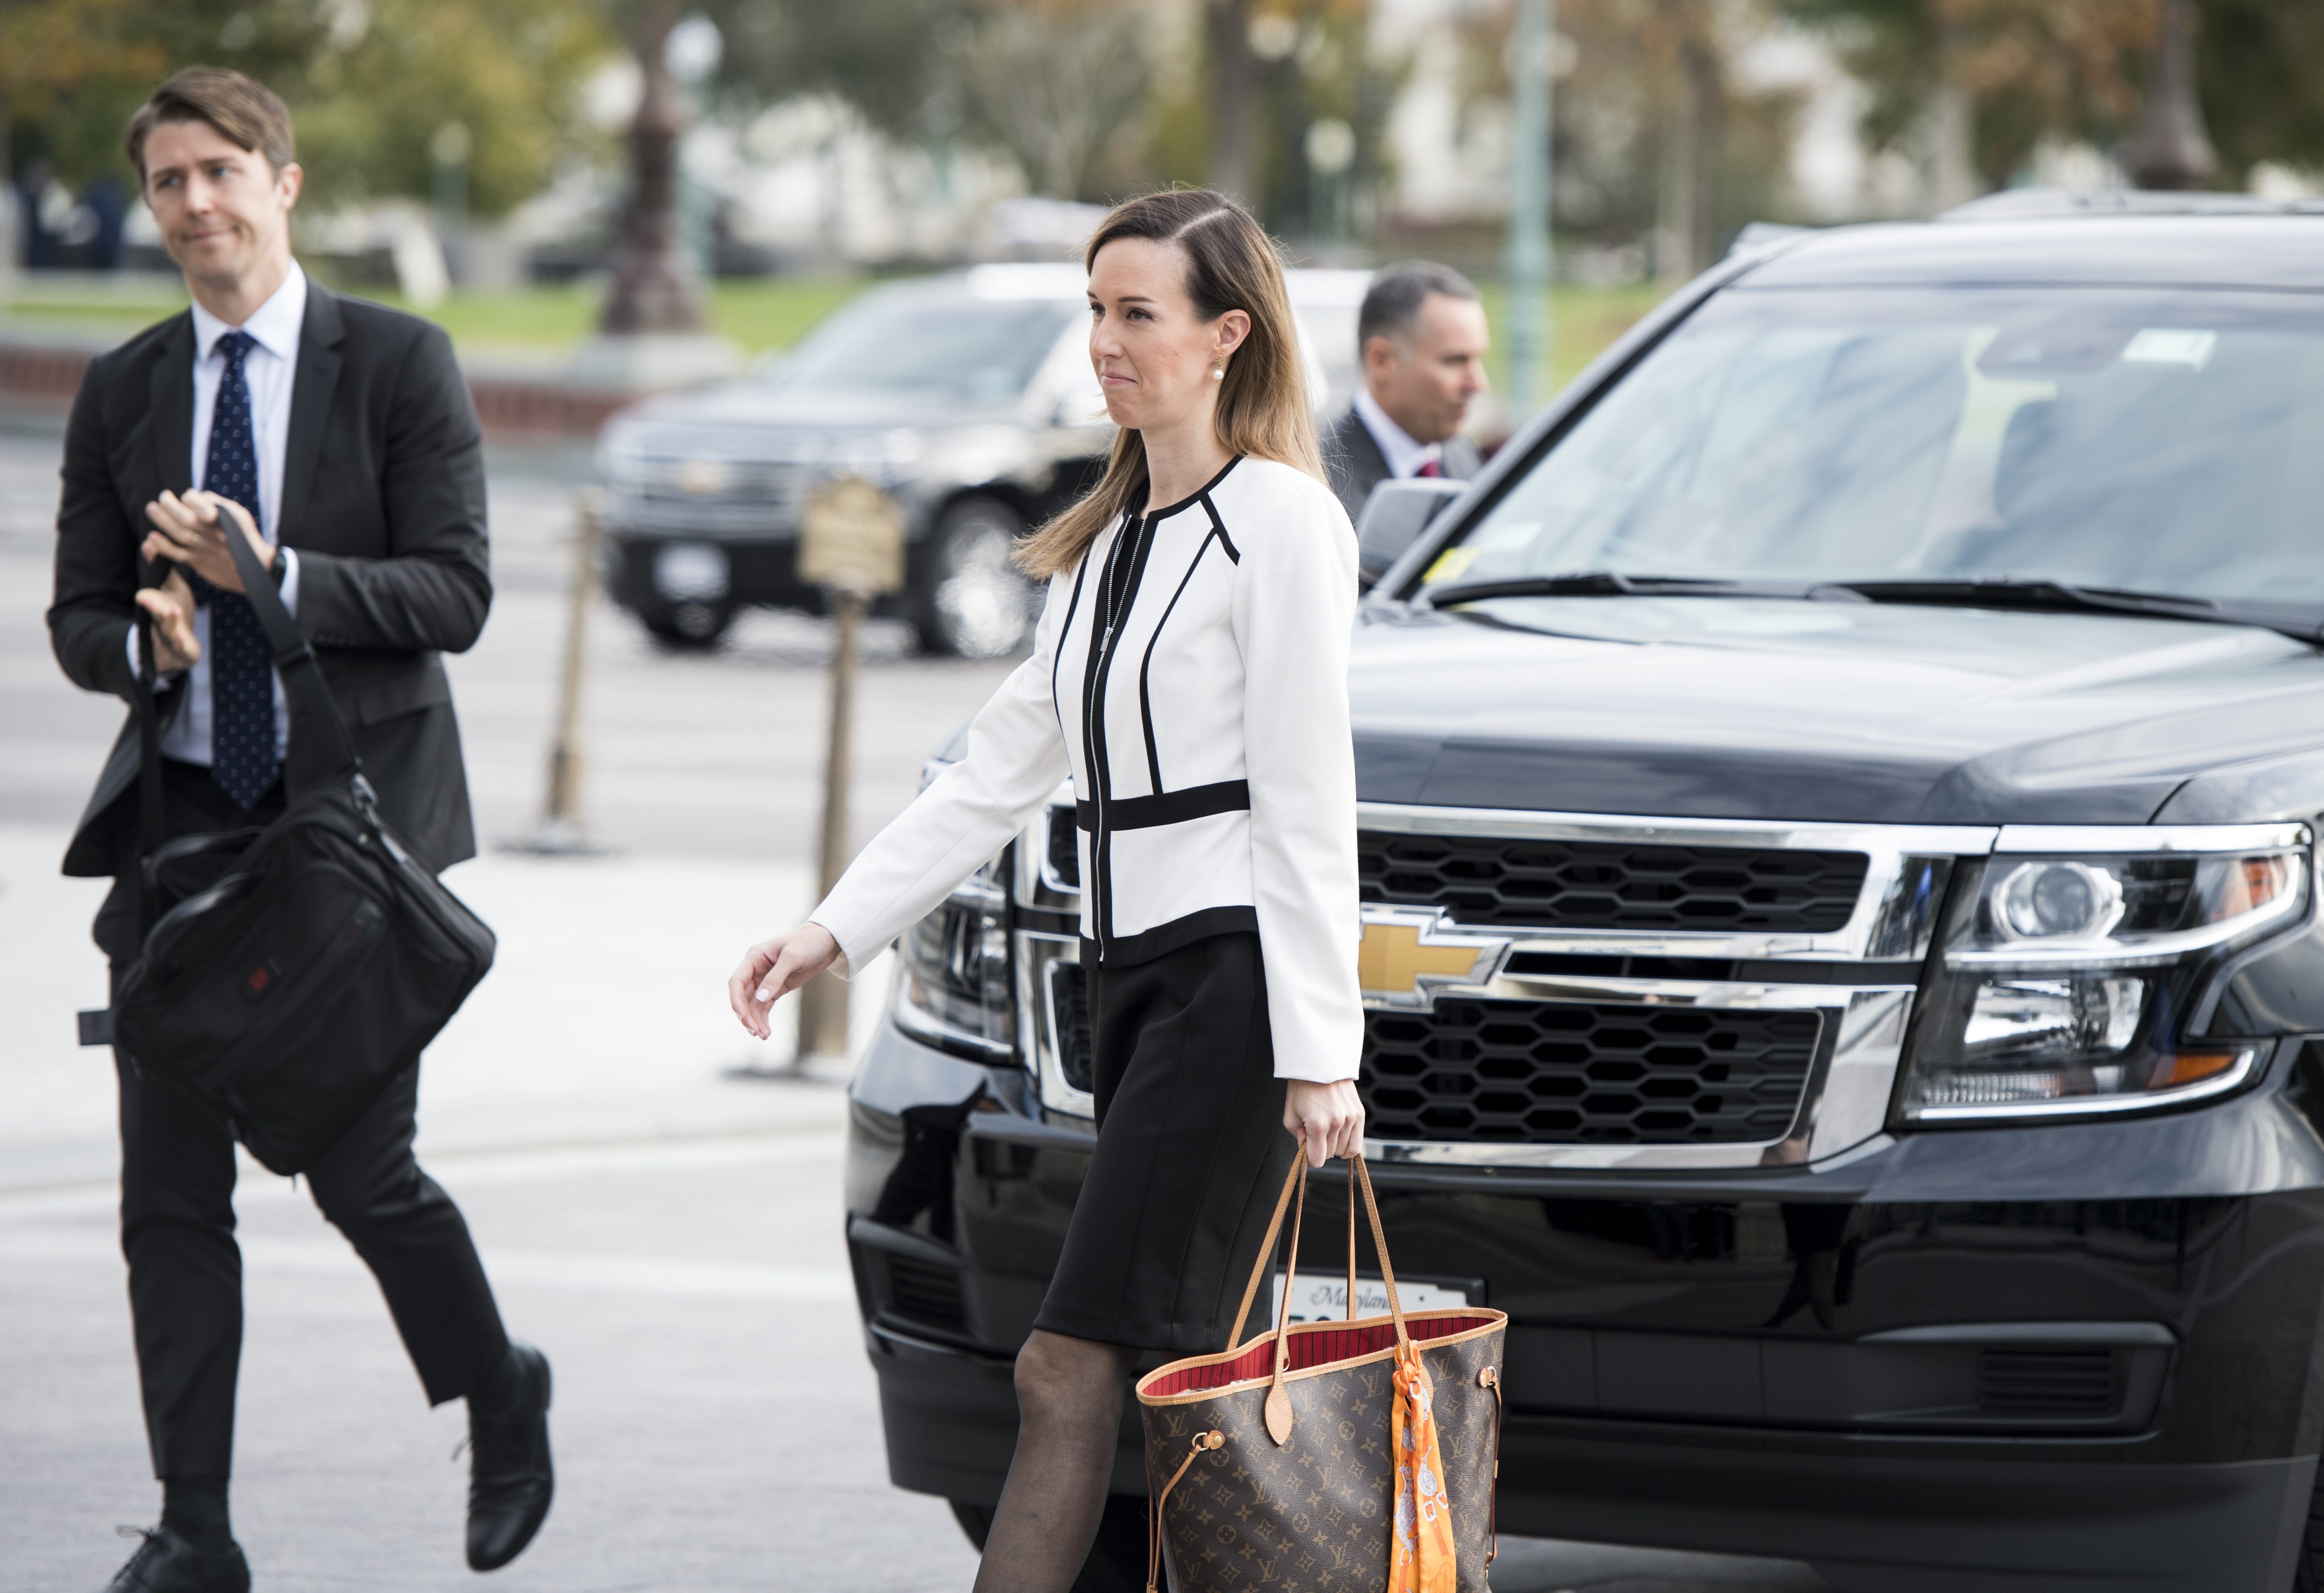 UNITED STATES - NOVEMBER 7: Jennifer Williams, a special advisor to Vice President Mike Pence for Europe and Russia, arrives for a closed door meeting to testify as part of the House impeachment inquiry into President Donald Trump on Capitol Hill on Thursday Nov. 7, 2019.(Photo By Bill Clark/CQ Roll Call)